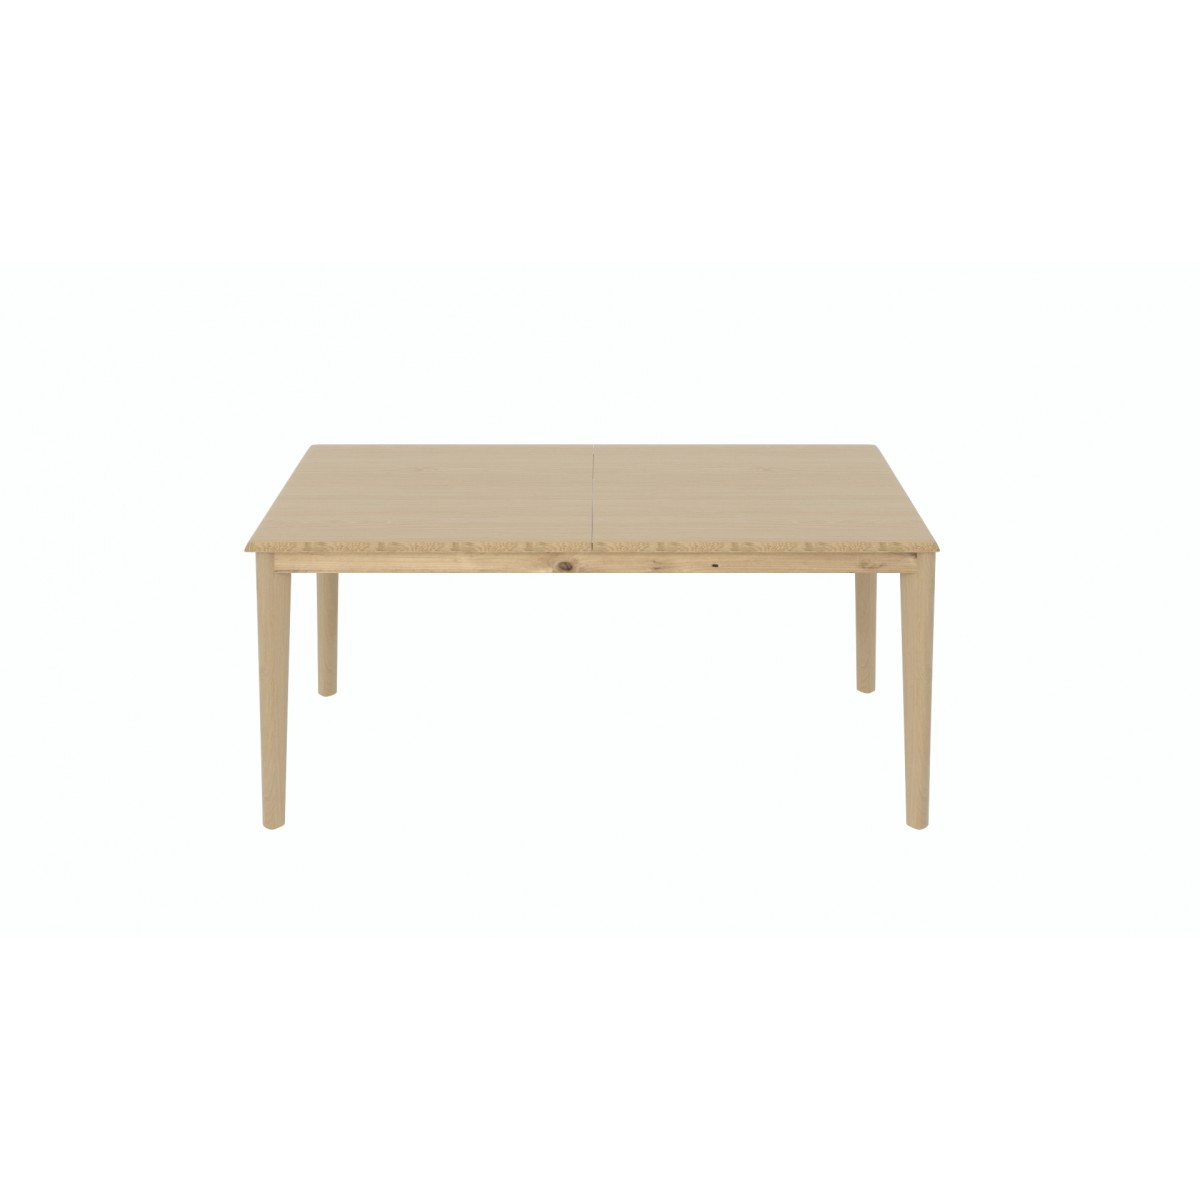 Table rectangulaire style vintage 180 cm avec allonge 80 cm plaqu ch ne kolsen zago store - Table rectangulaire avec allonge ...